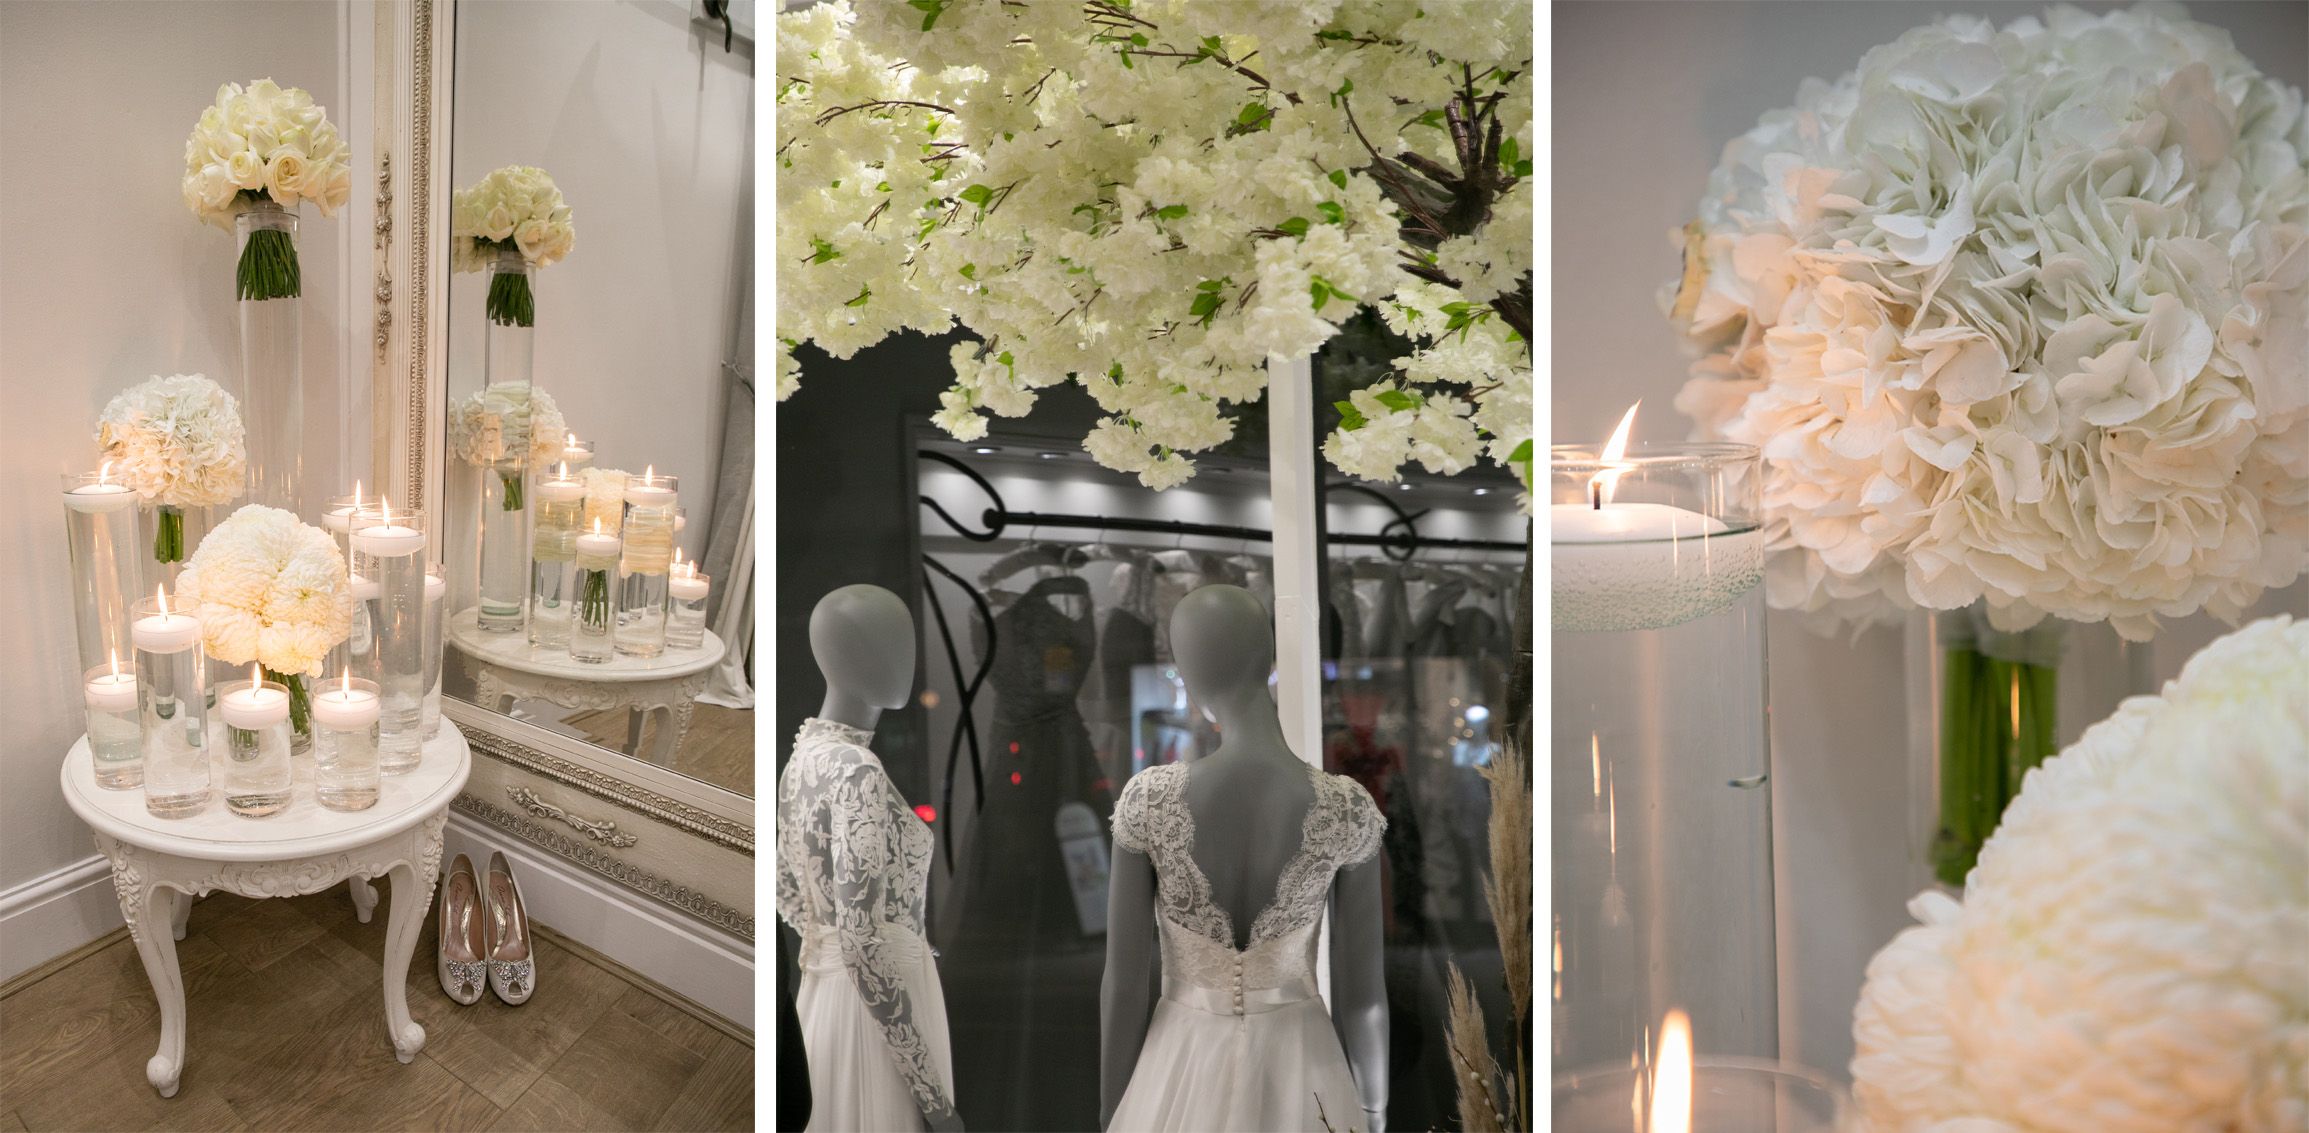 Suzanne Neville Showroom | Bridal Wear boutique shops for wedding dresses in Altrincham, Cheshire near Manchester in the north west